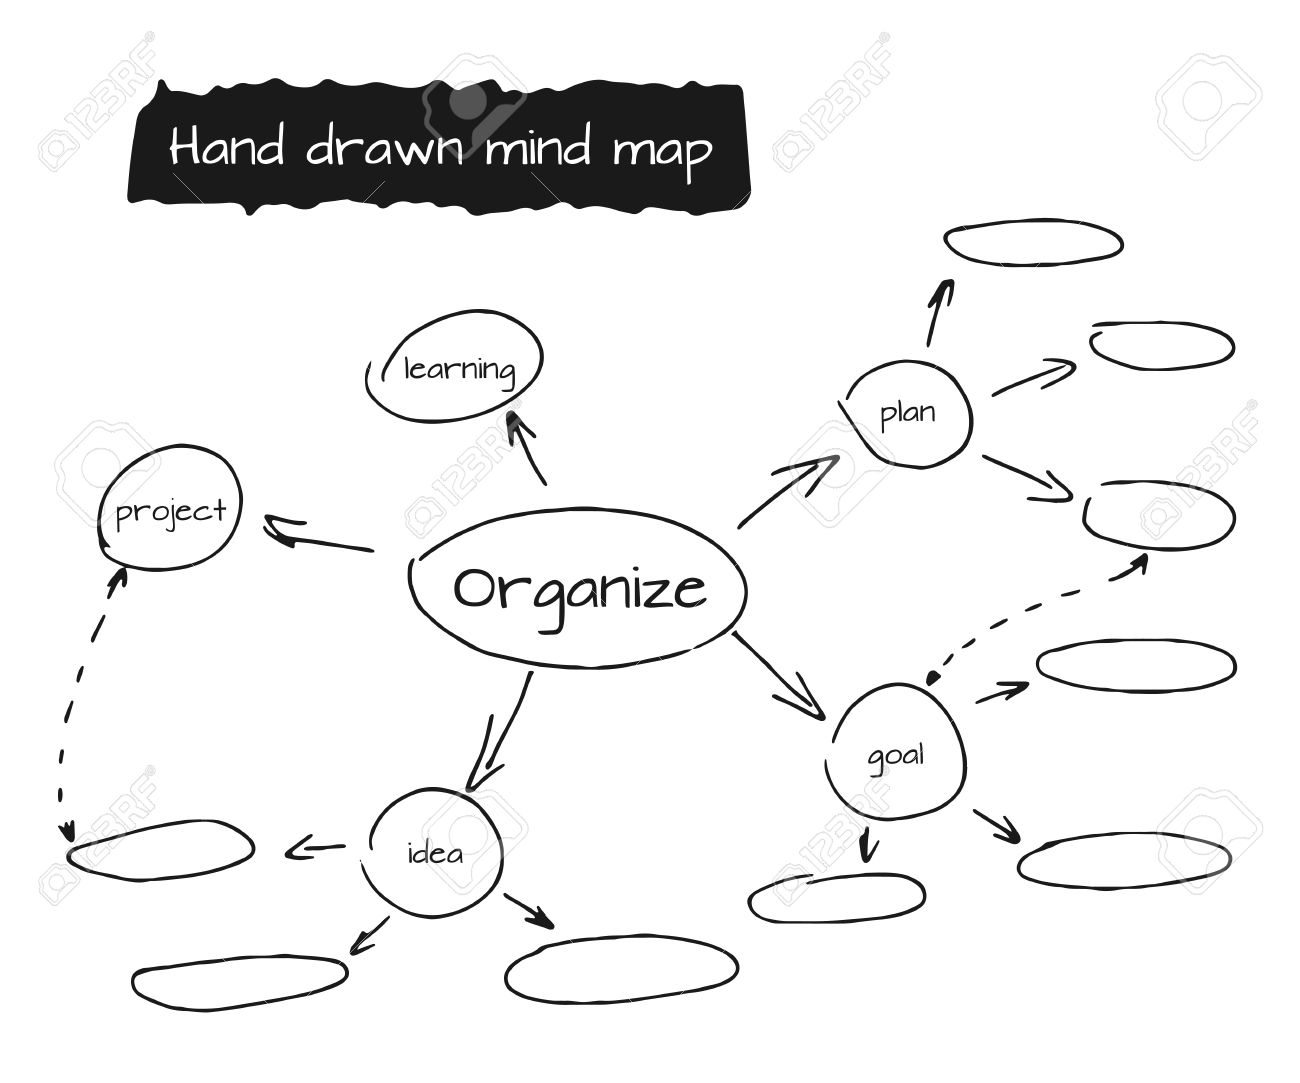 Hand drawn mind map flow chart with space royalty free cliparts hand drawn mind map flow chart with space stock vector 33474754 nvjuhfo Images